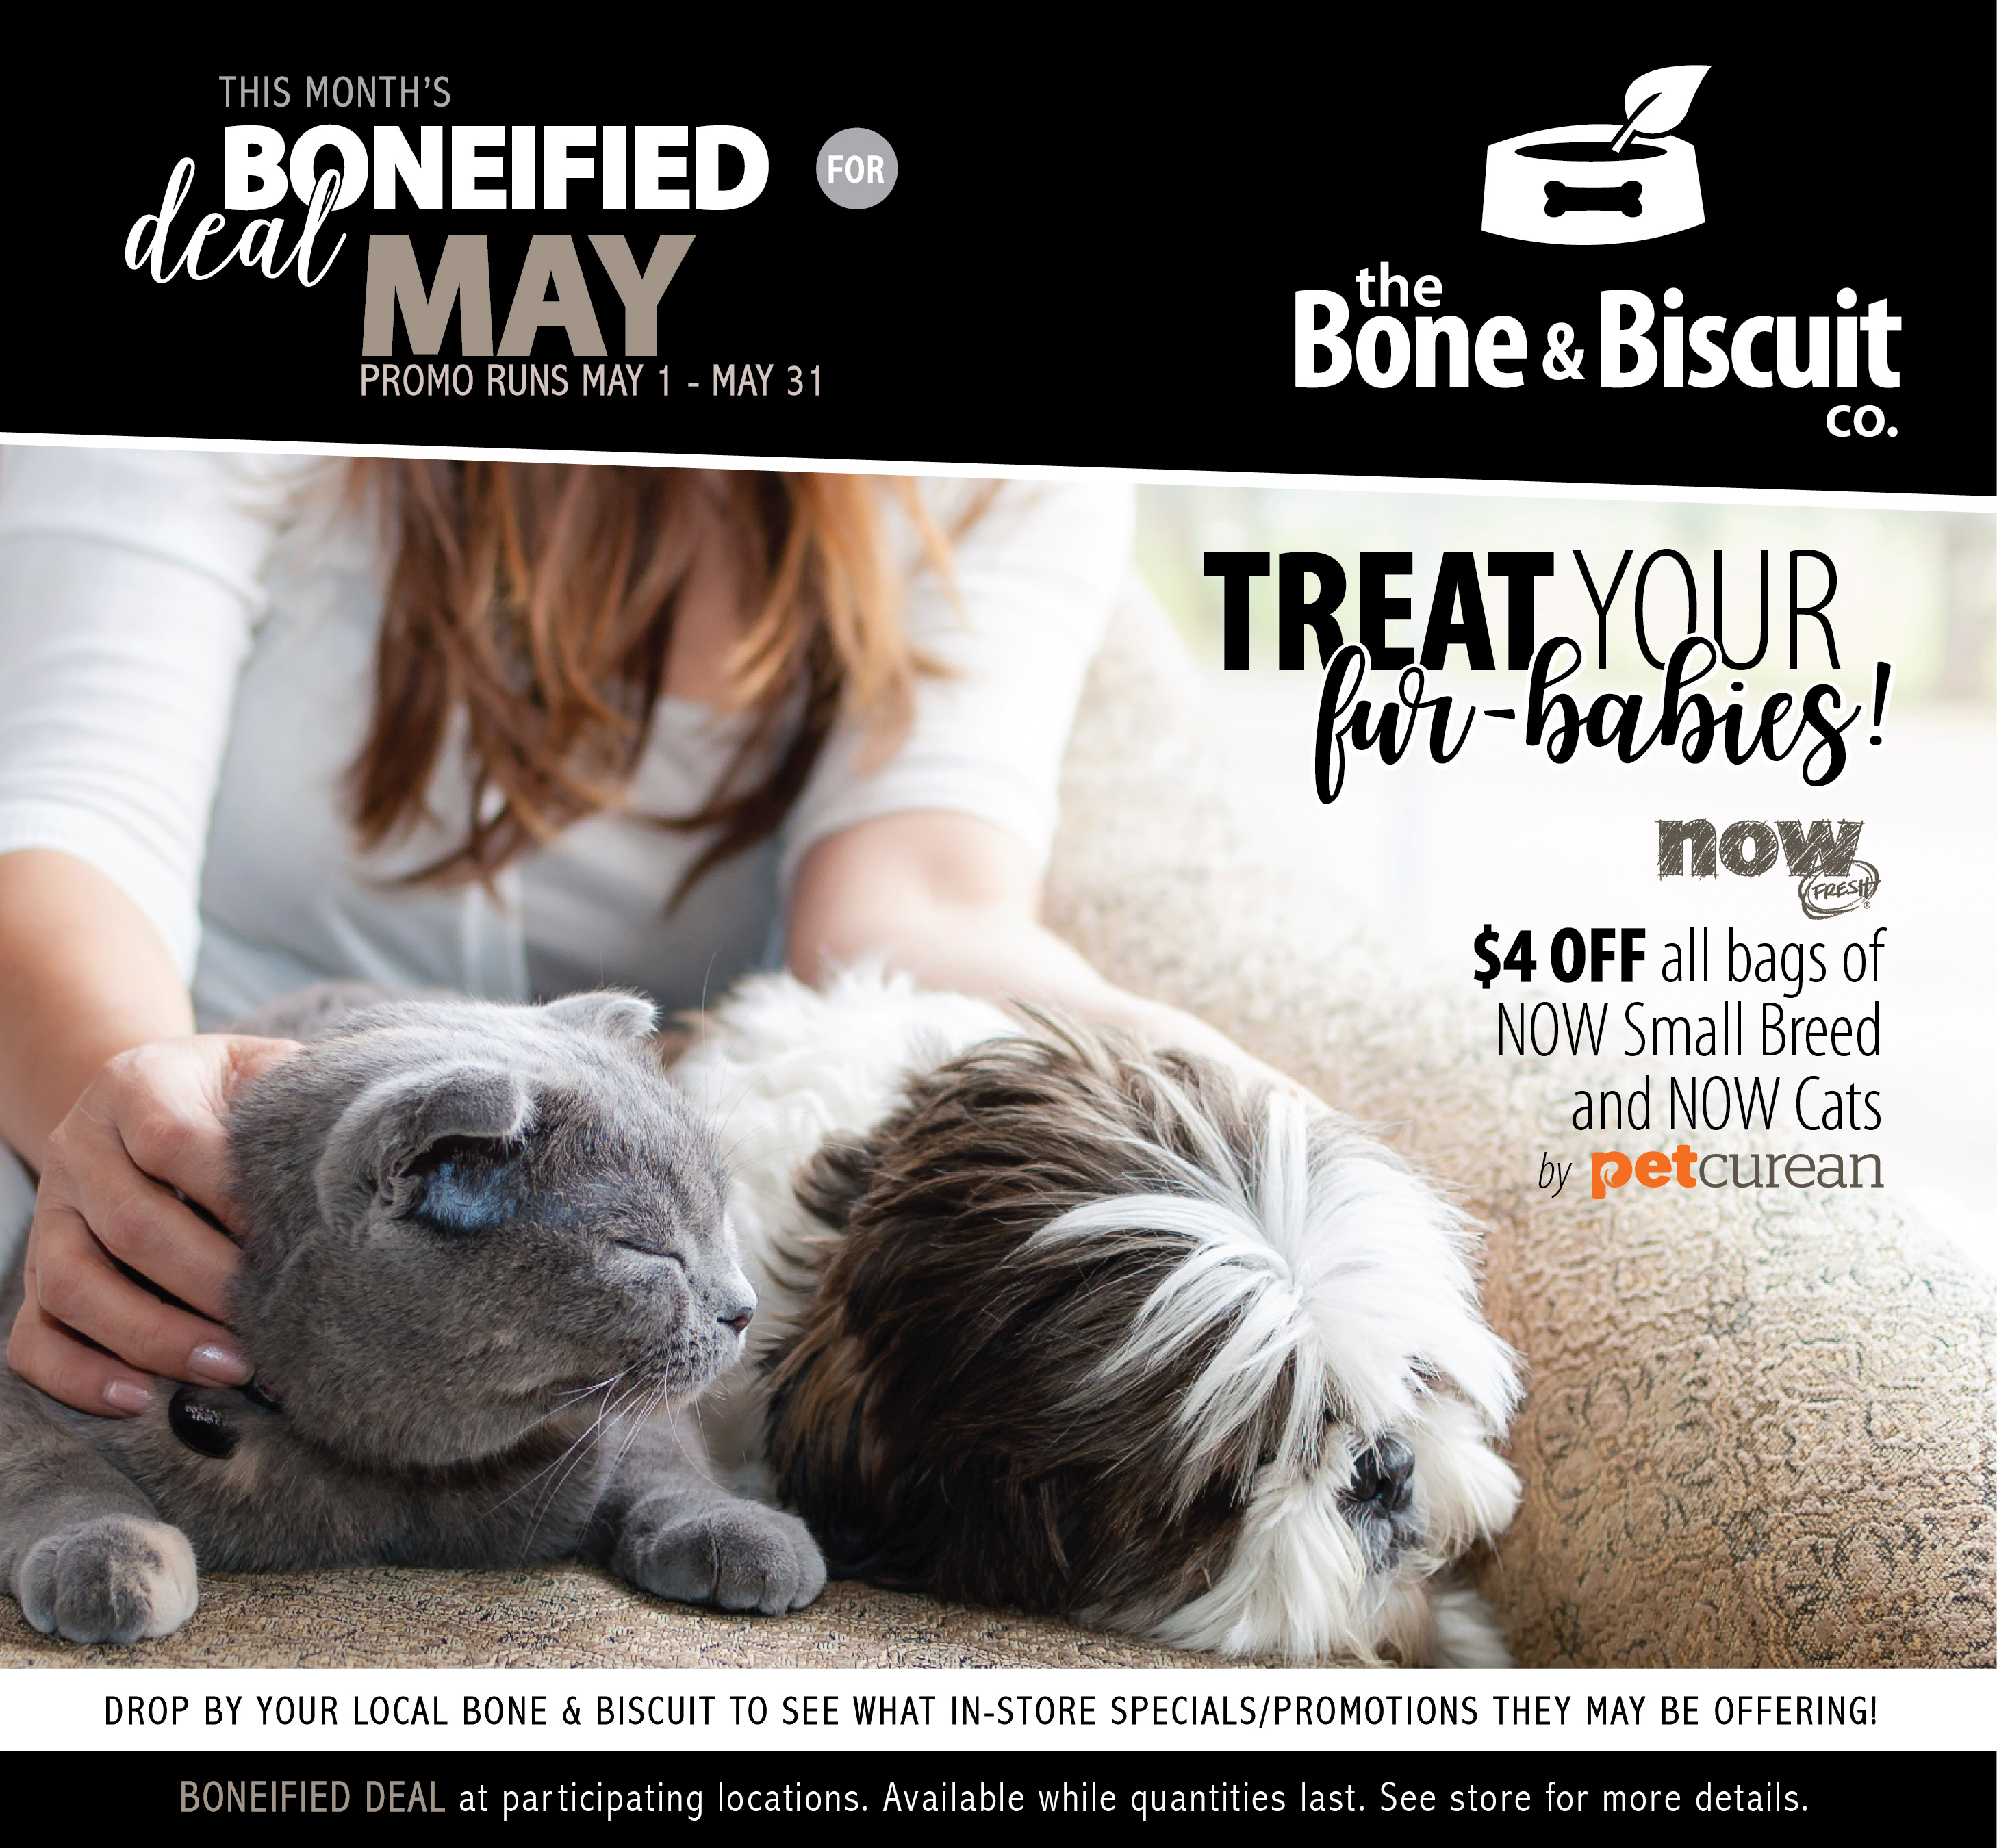 This month's boneified deal!